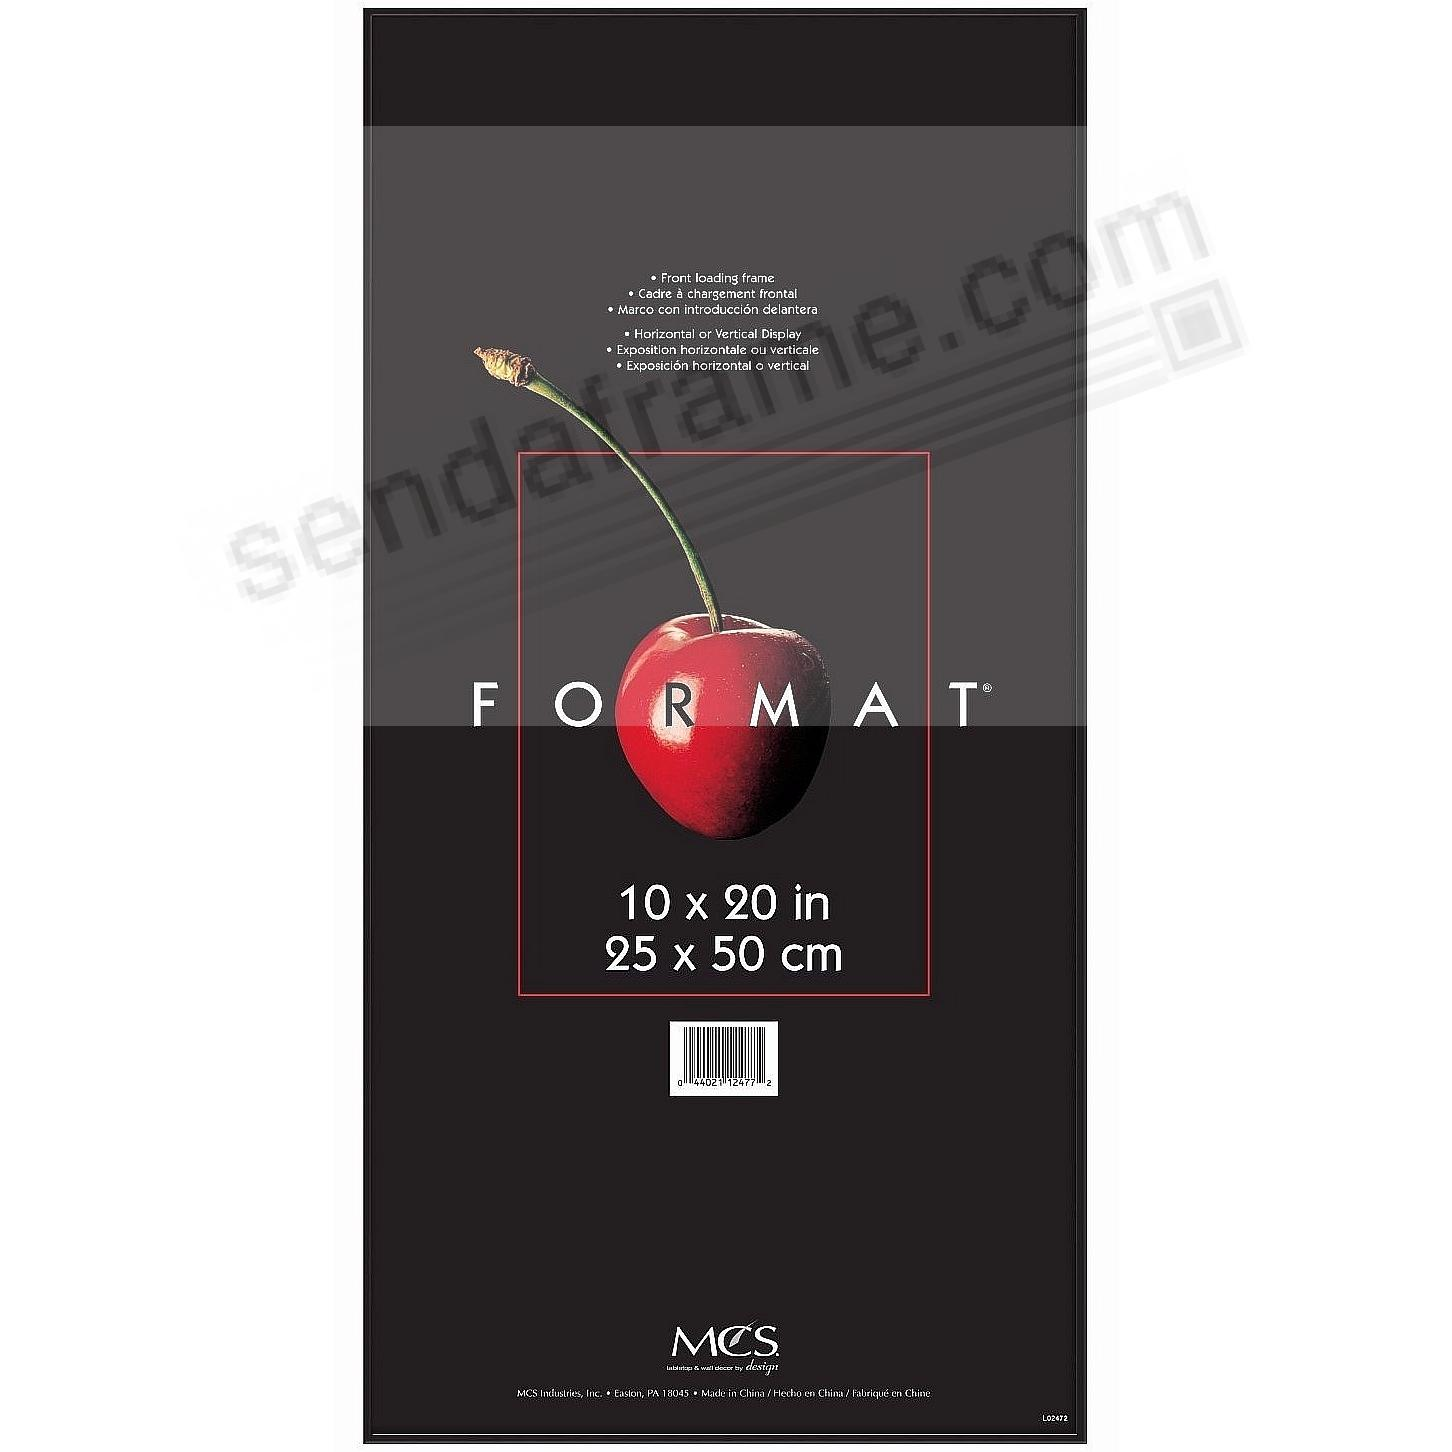 The ORIGINAL FORMAT FRONT-LOAD Black ABS document/print 10x20 Frame